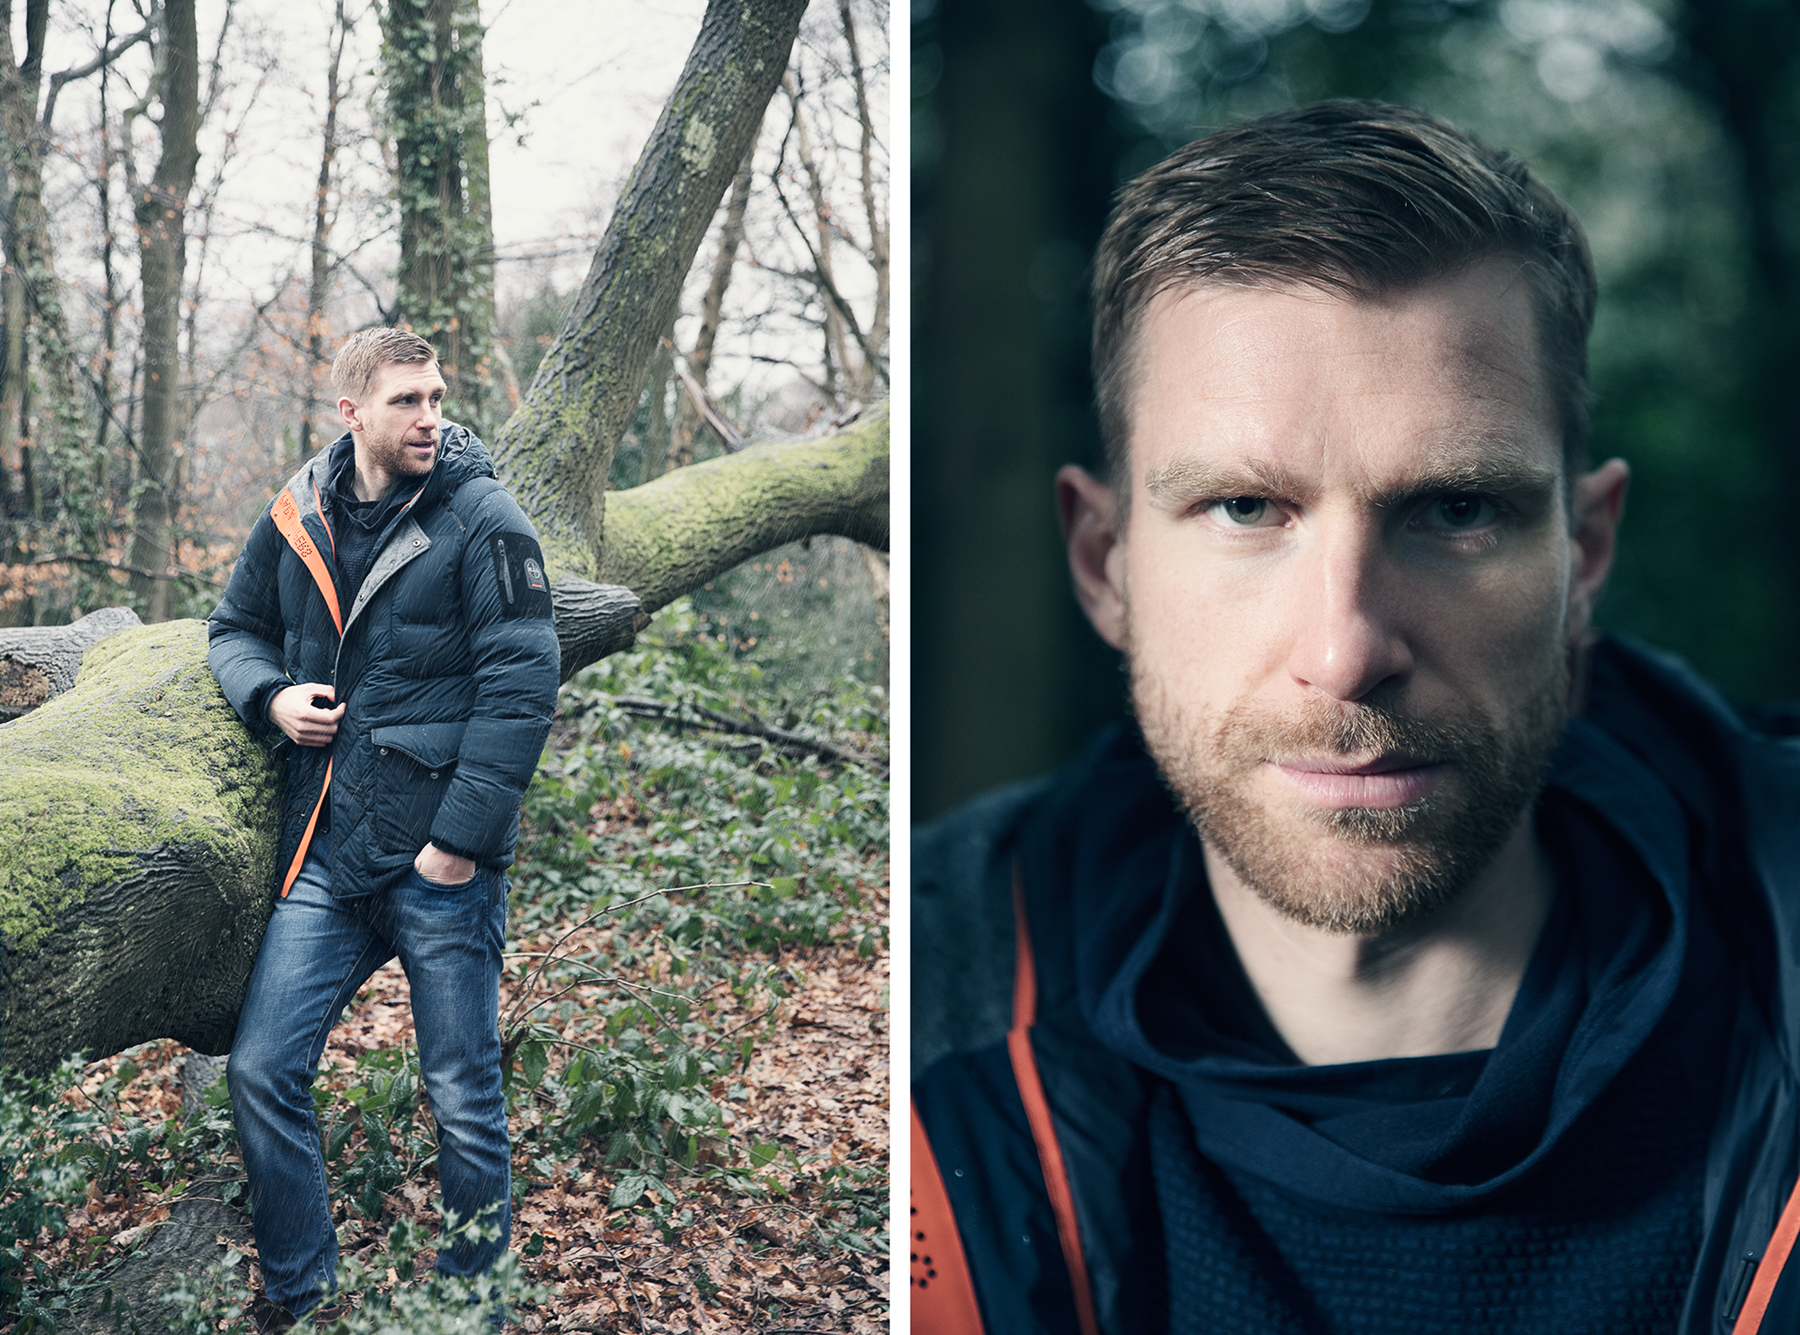 I photographed Arsenal captain Per Mertesacker for German magazine Der Spiegel. Apparently, being a professional footballer is not as easy as it looks. Mertesacker landed himself in a bit of controversy with his views on the pressures of the football world.   I thought he was easygoing, confident and accomodating during our short photo session in the rain on Hampstead Heath.